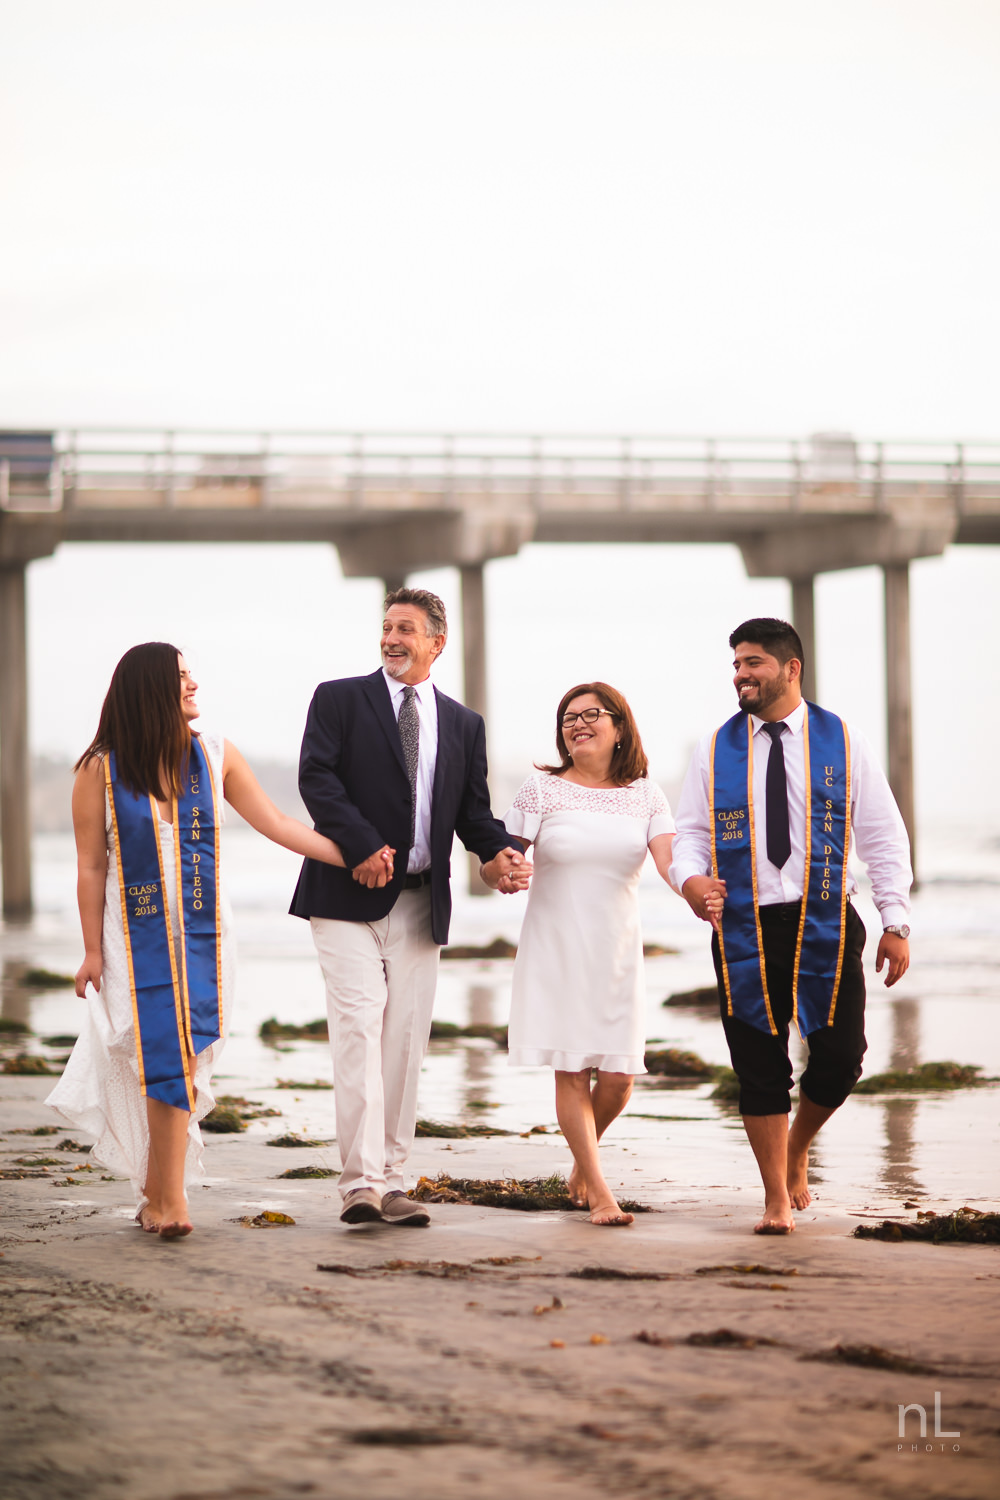 san-diego-ucsd-family-graduation-portraits-5734.jpg